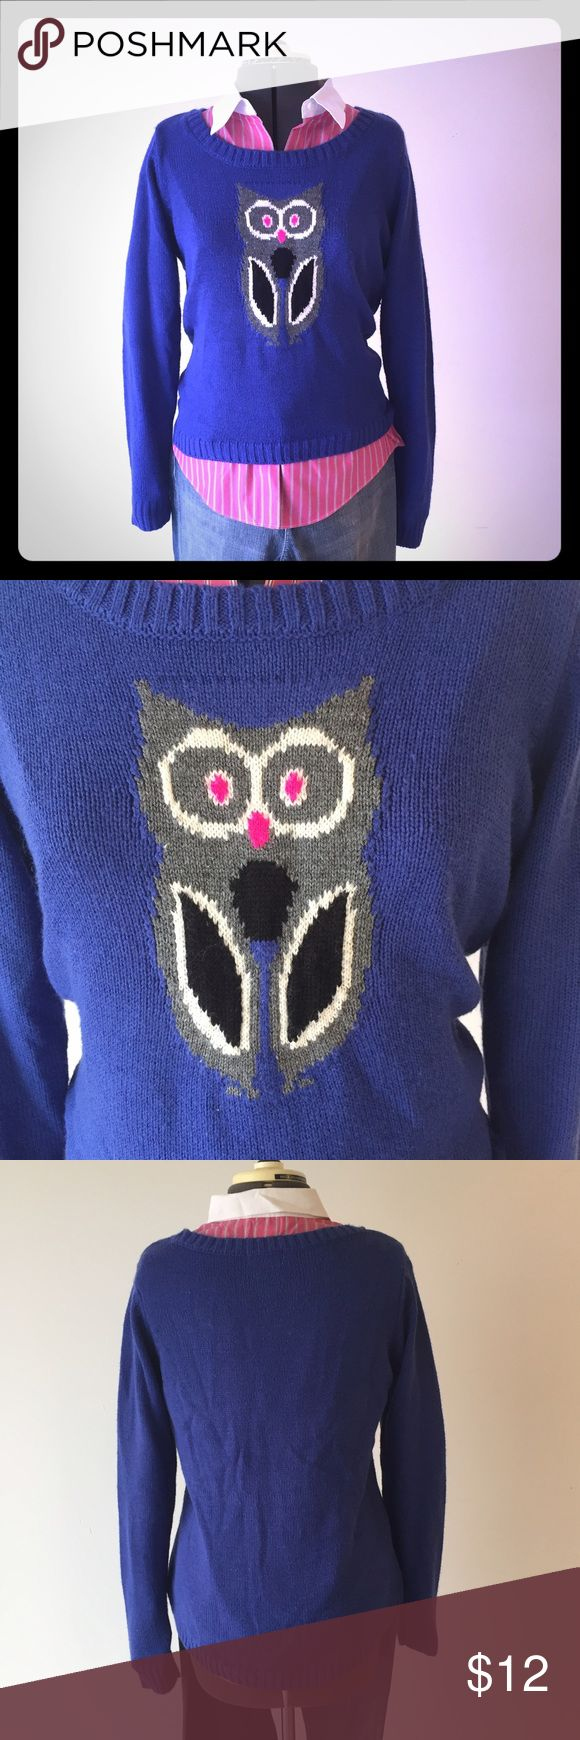 "Lei Owl Sweater Adorable Lei Owl Sweater. Sweater is blue with gray Owl and pink eyes. Juniors size XL measures : 16"" across shoulders, 19"" across chest, 25"" long, 24"" sleeve. 99% acrylic, 1% other. Has been washed a couple of times and shows a little wear, see last pic. 1029/200/110616 lei Shirts & Tops Sweaters"